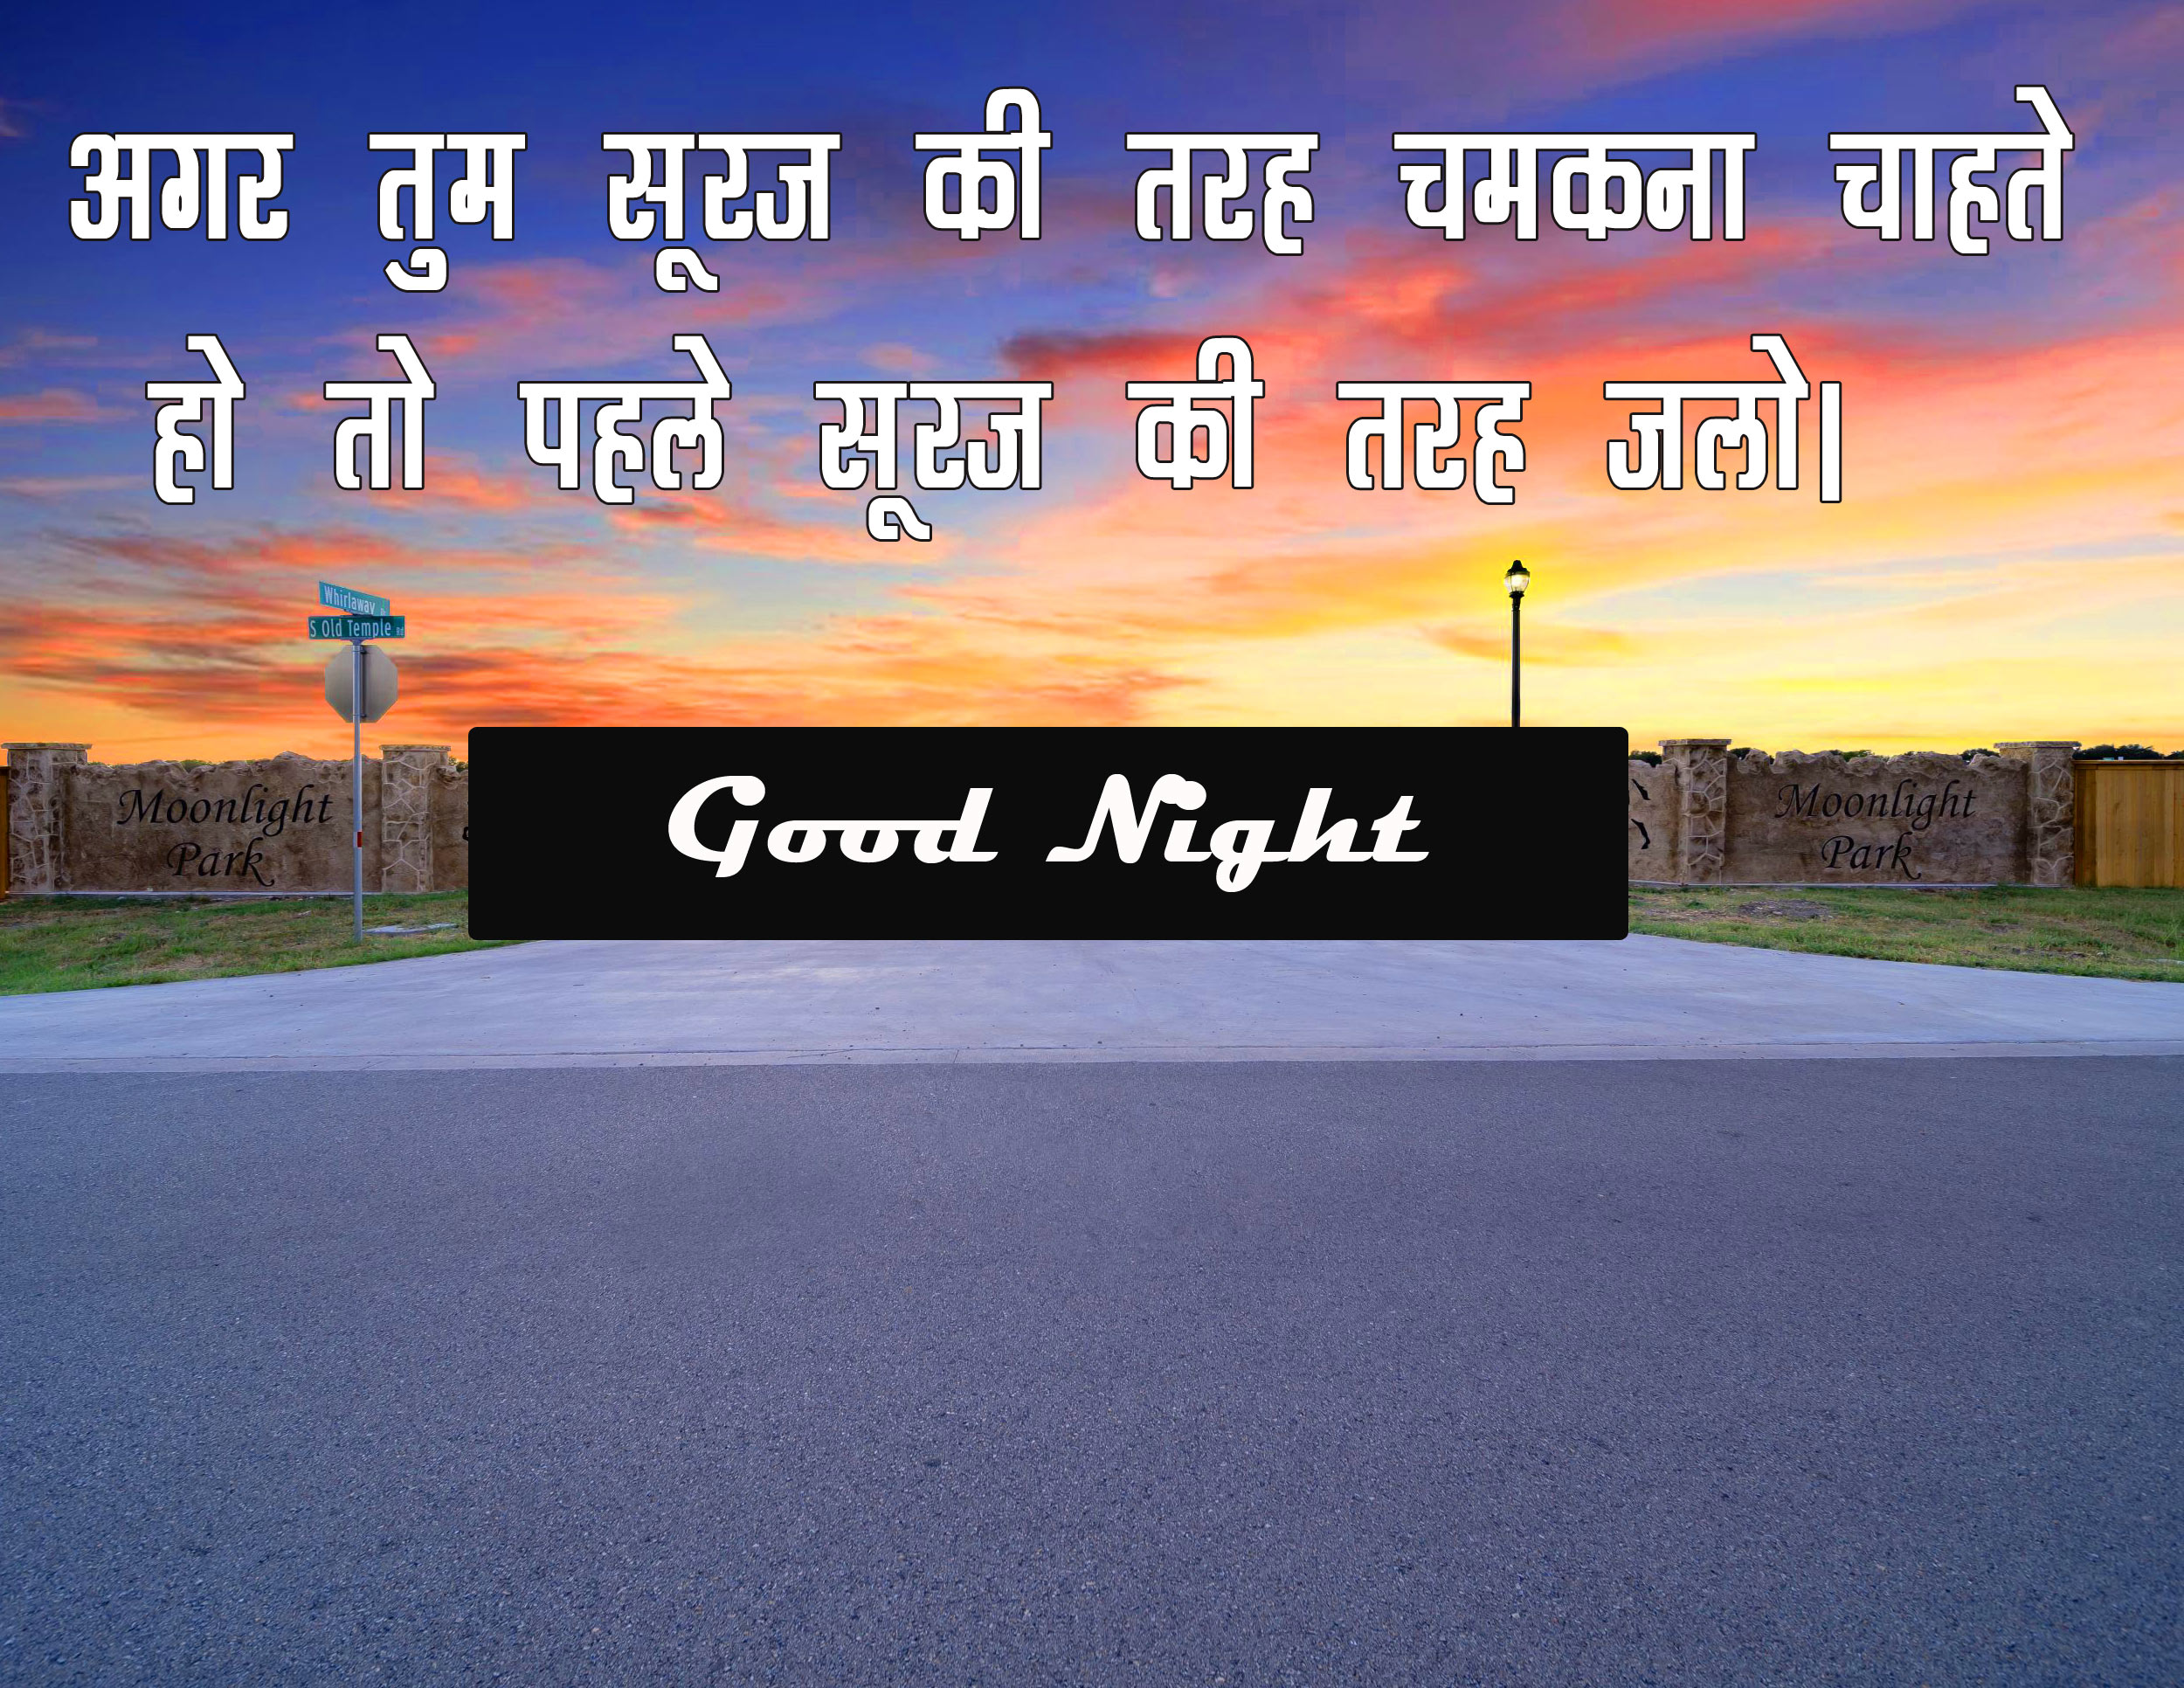 Hindi Motivational Quotes Good Night  Photo Free